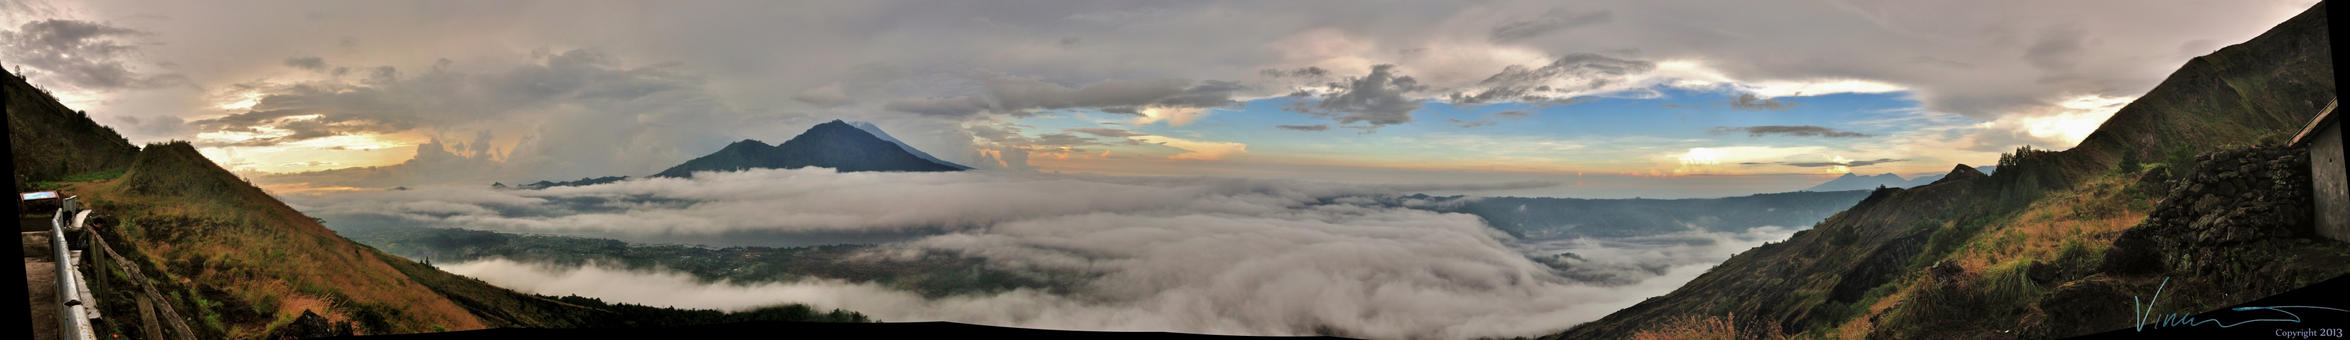 Panorama of View from Mount Batur, Bali[Indonesia] by vinceat852